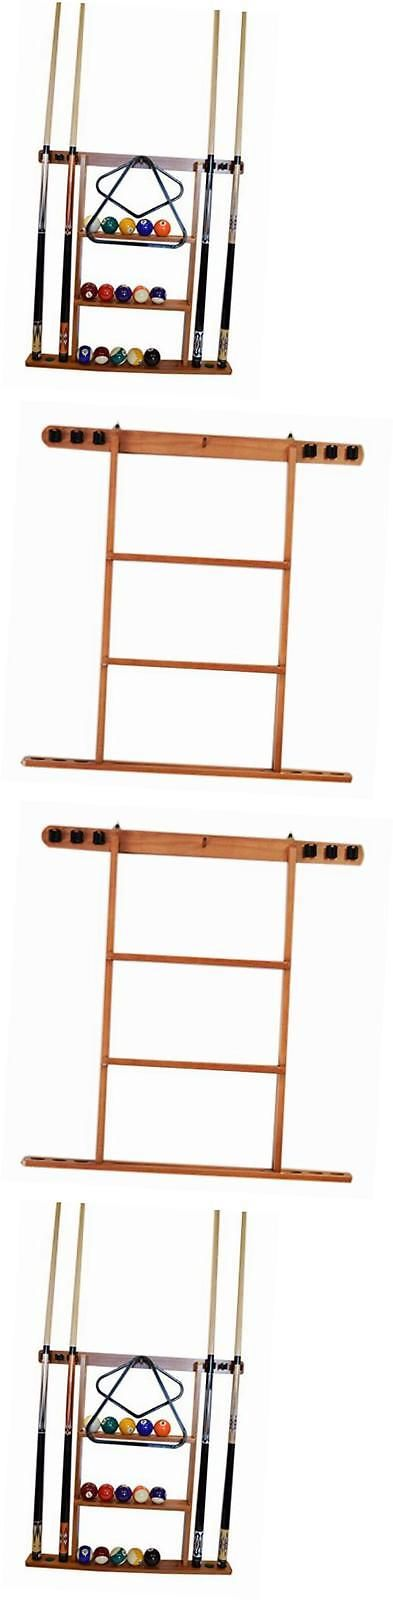 Ball and Cue Racks 75185: 6 Pool Cue - Billiard Stick Wall Rack Oak Finish Billiards Pool Cue Rack -> BUY IT NOW ONLY: $47.25 on eBay!